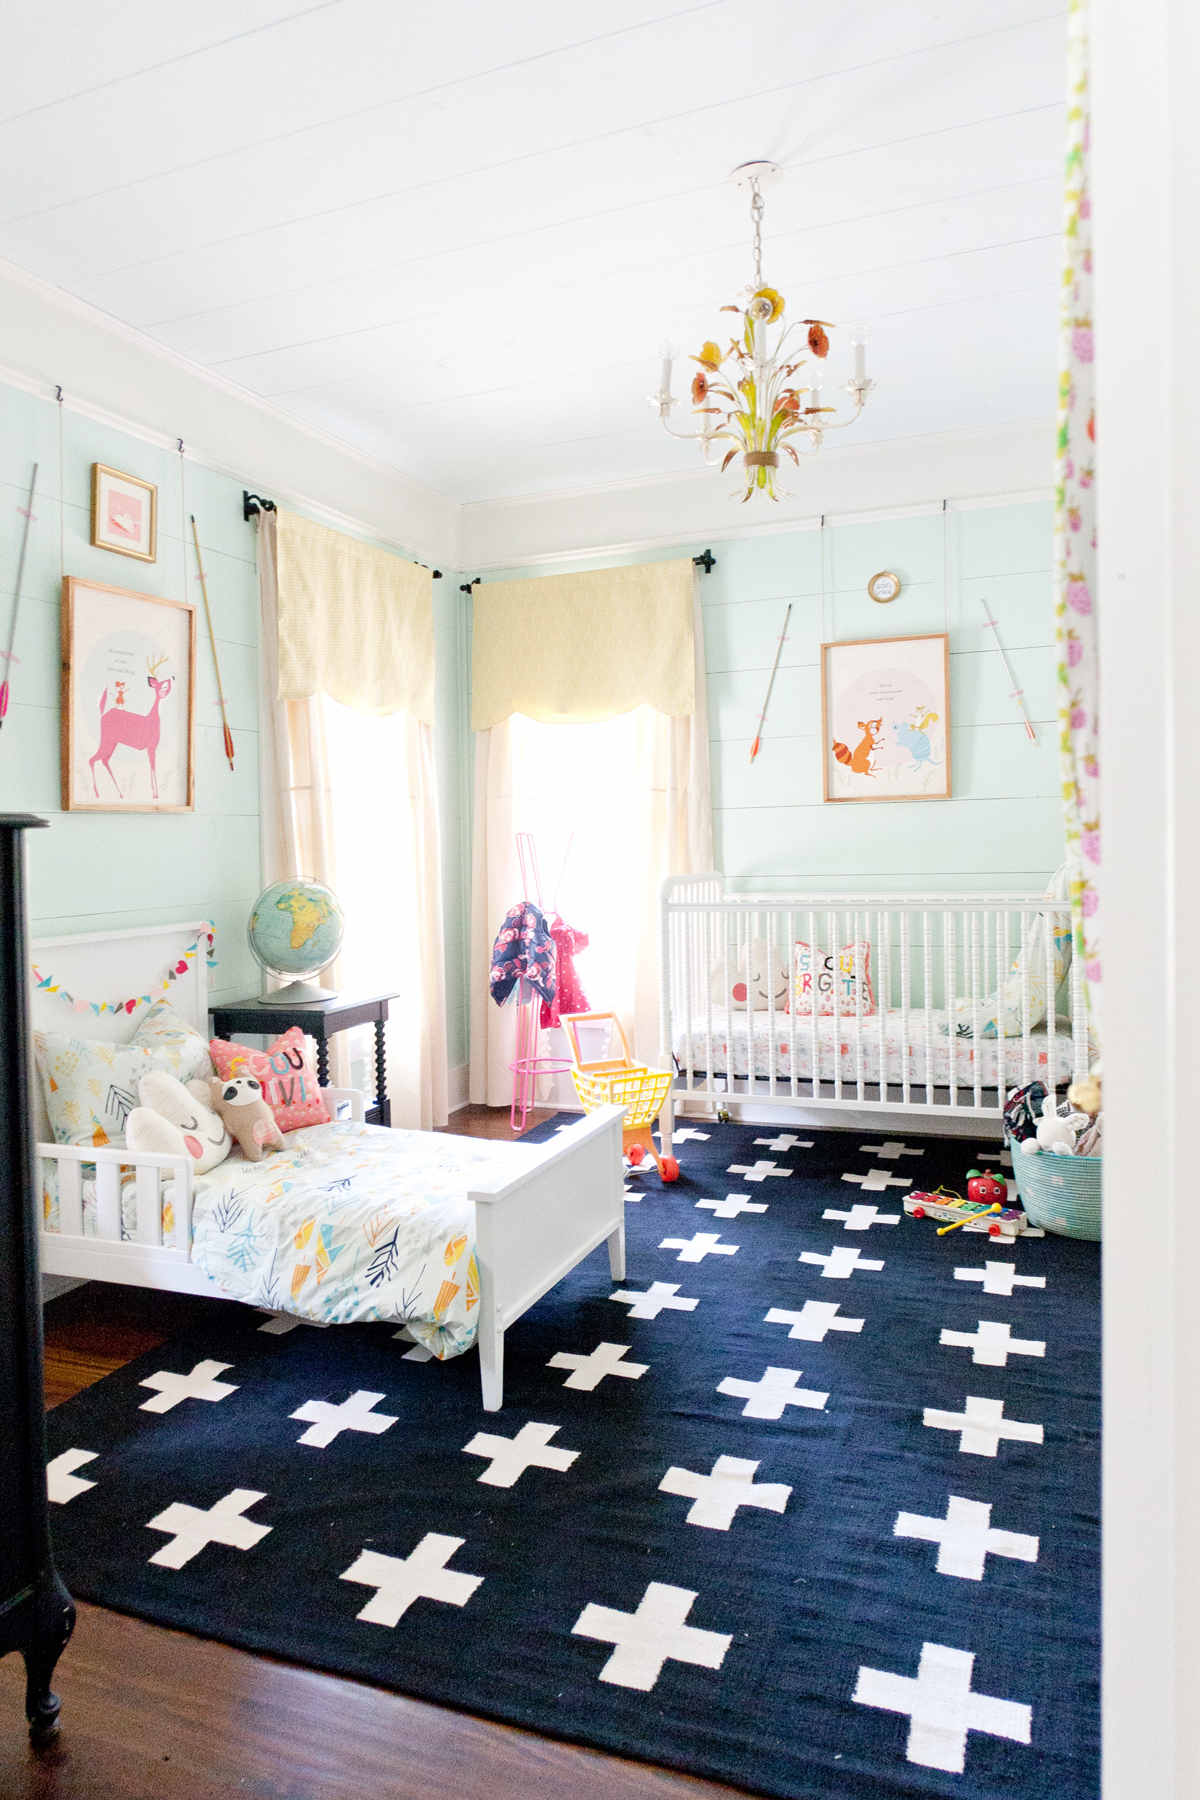 I love almost anything Joni does, but this small shared baby and kid room is the best, from Lay Baby Lay.